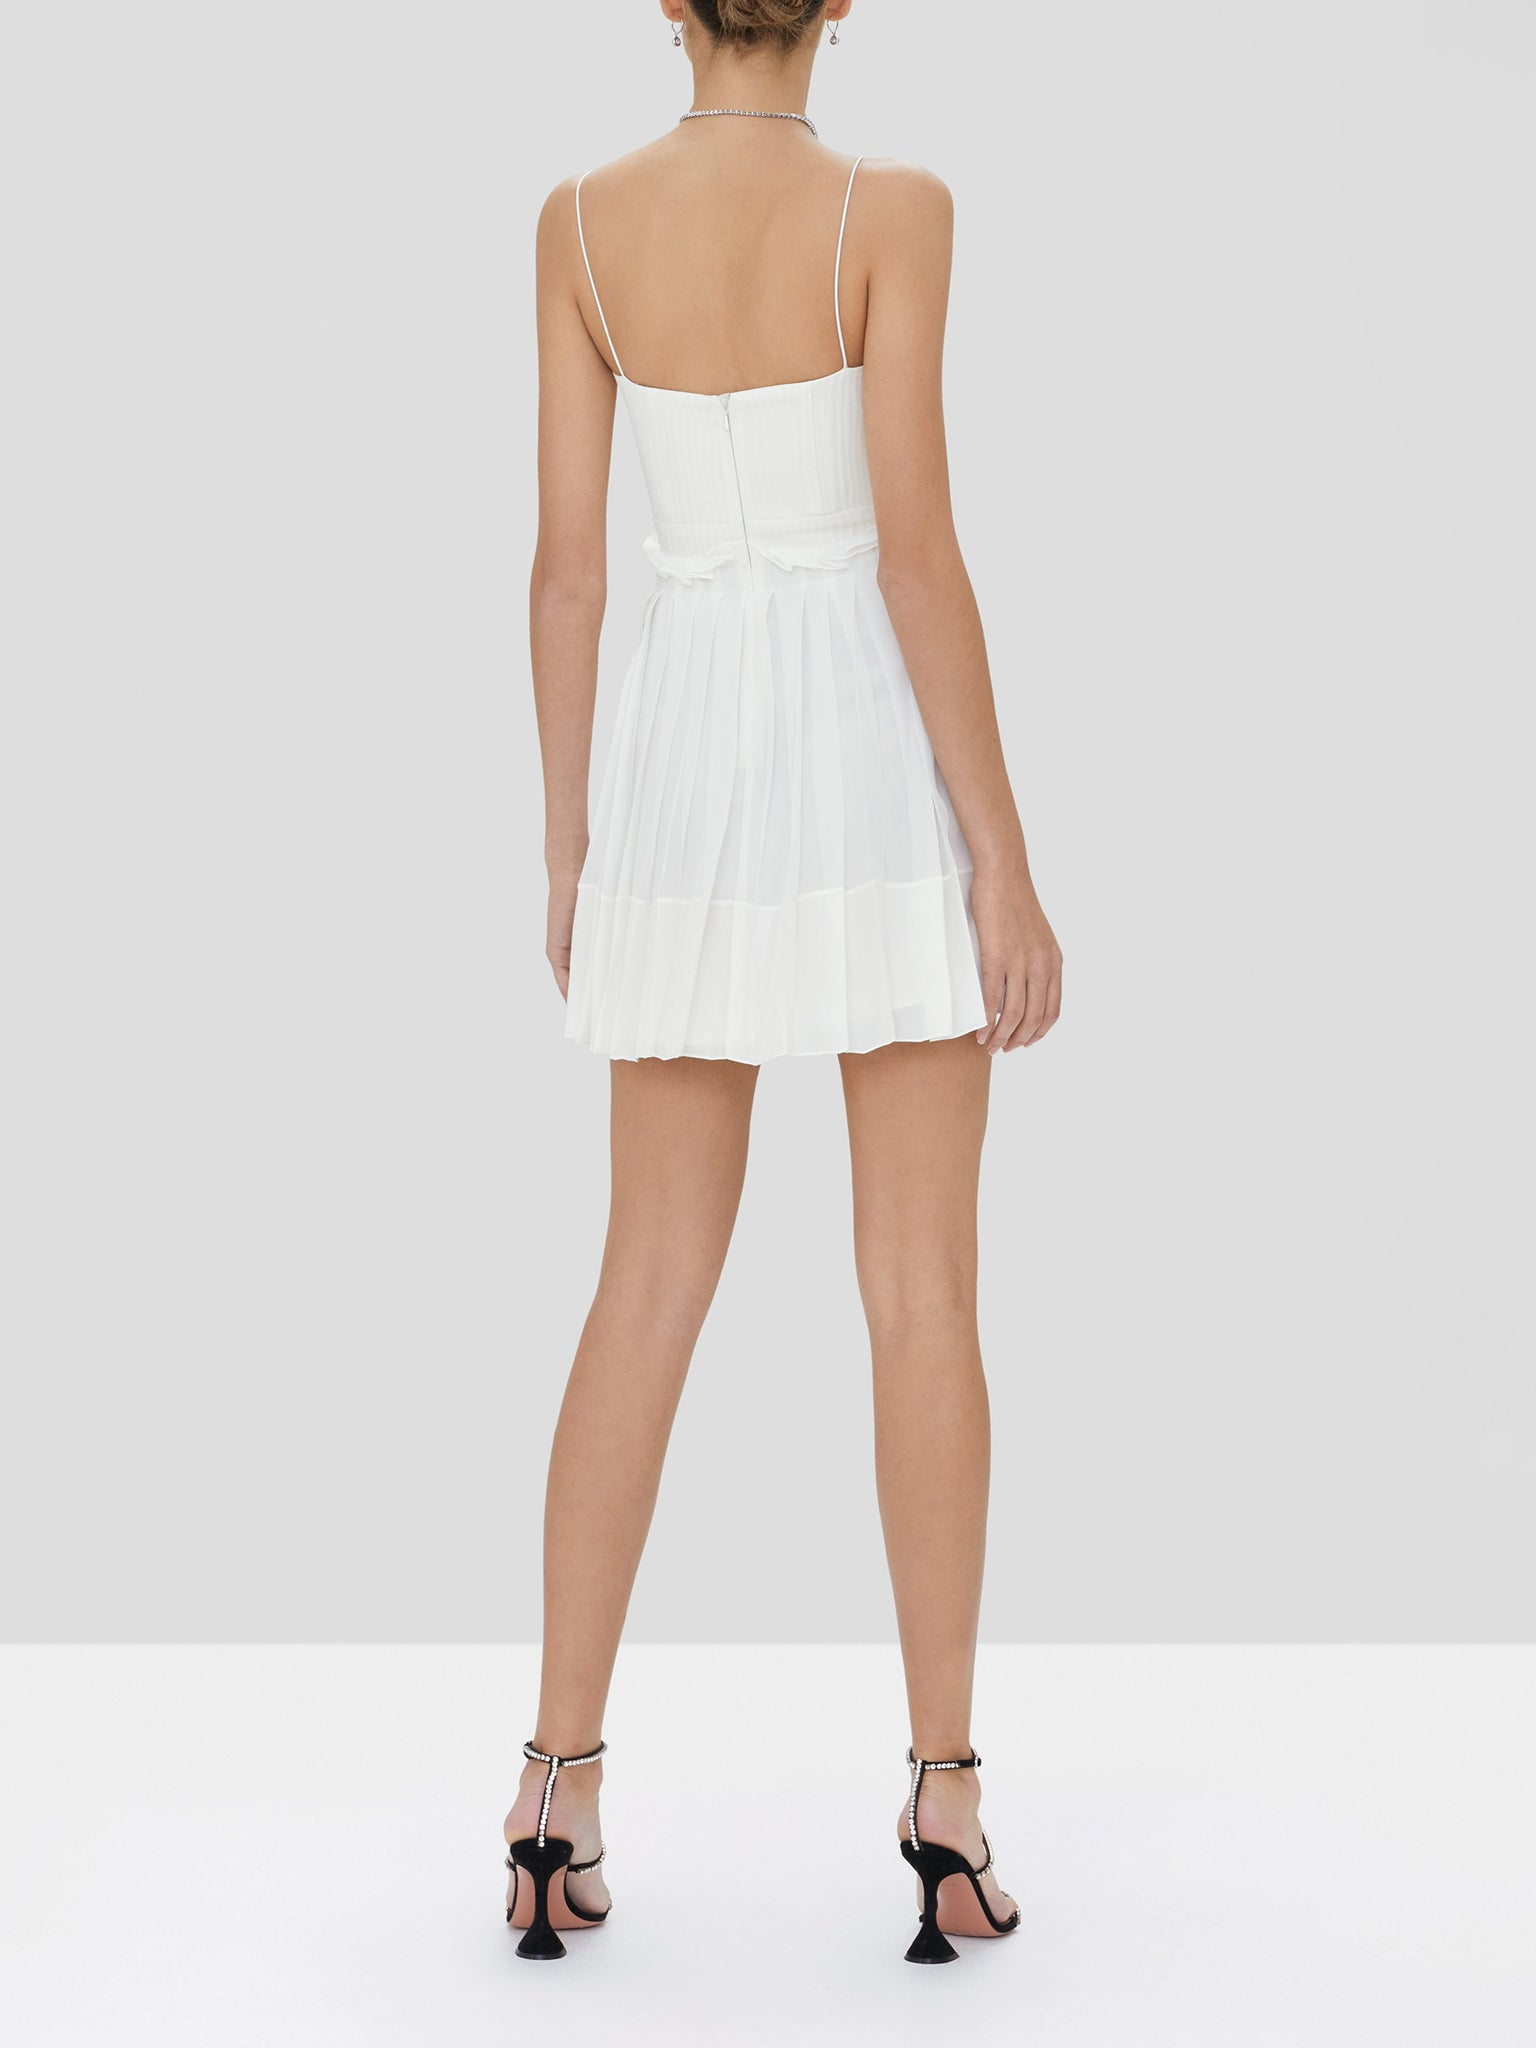 jasmine dress in white - Rear View